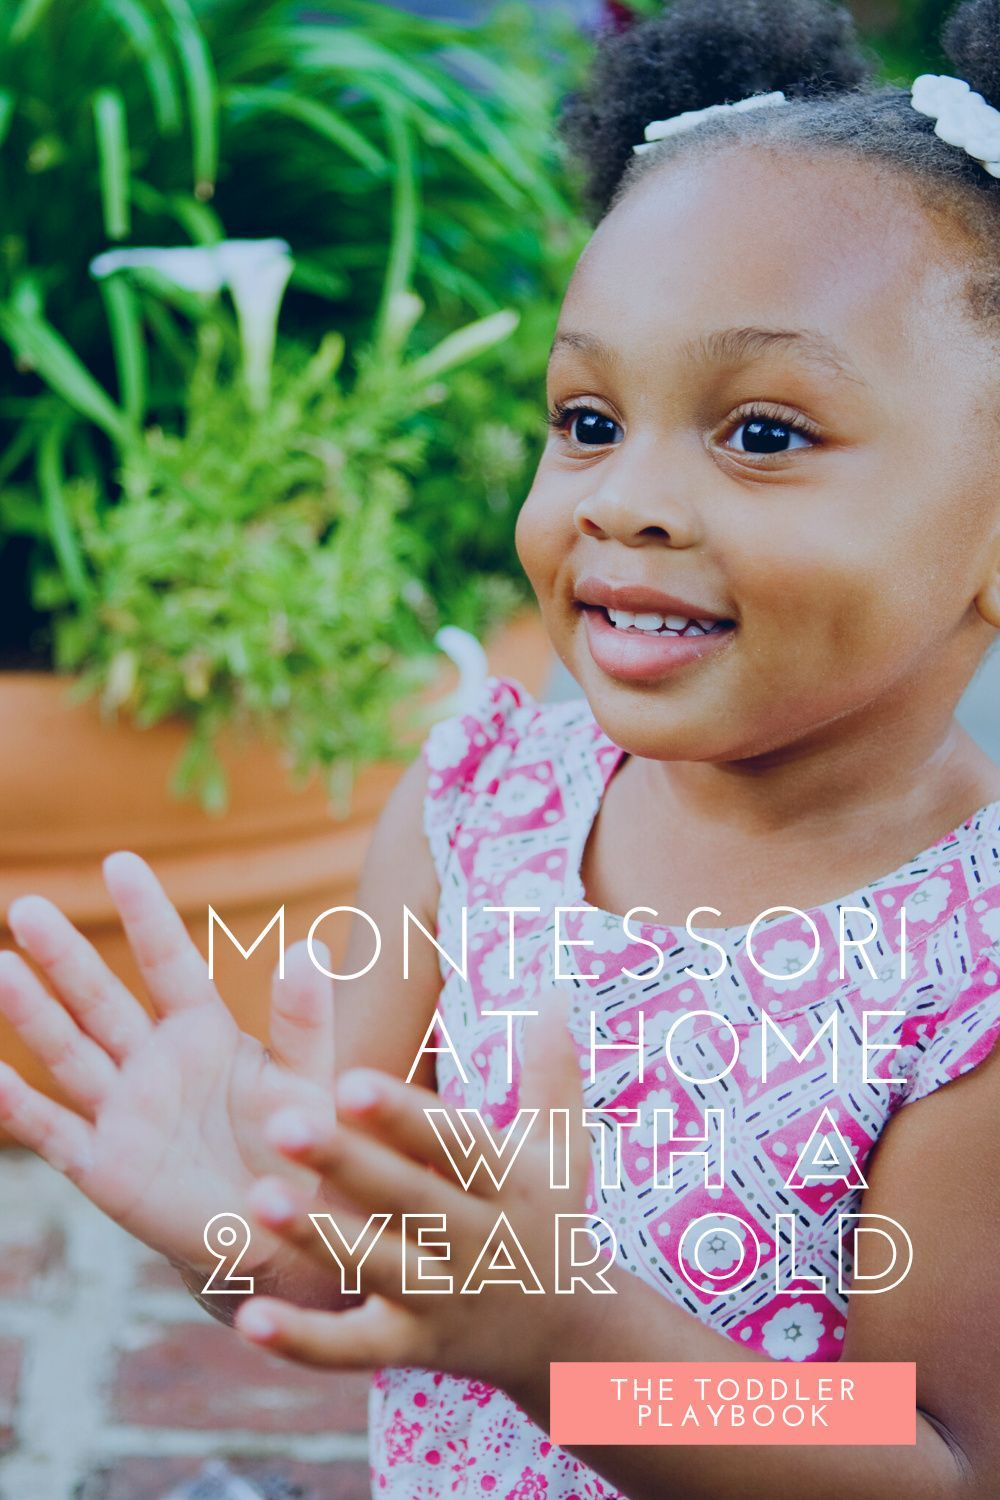 Montessori at Home with Your 2 Year Old (The Easy Way!)